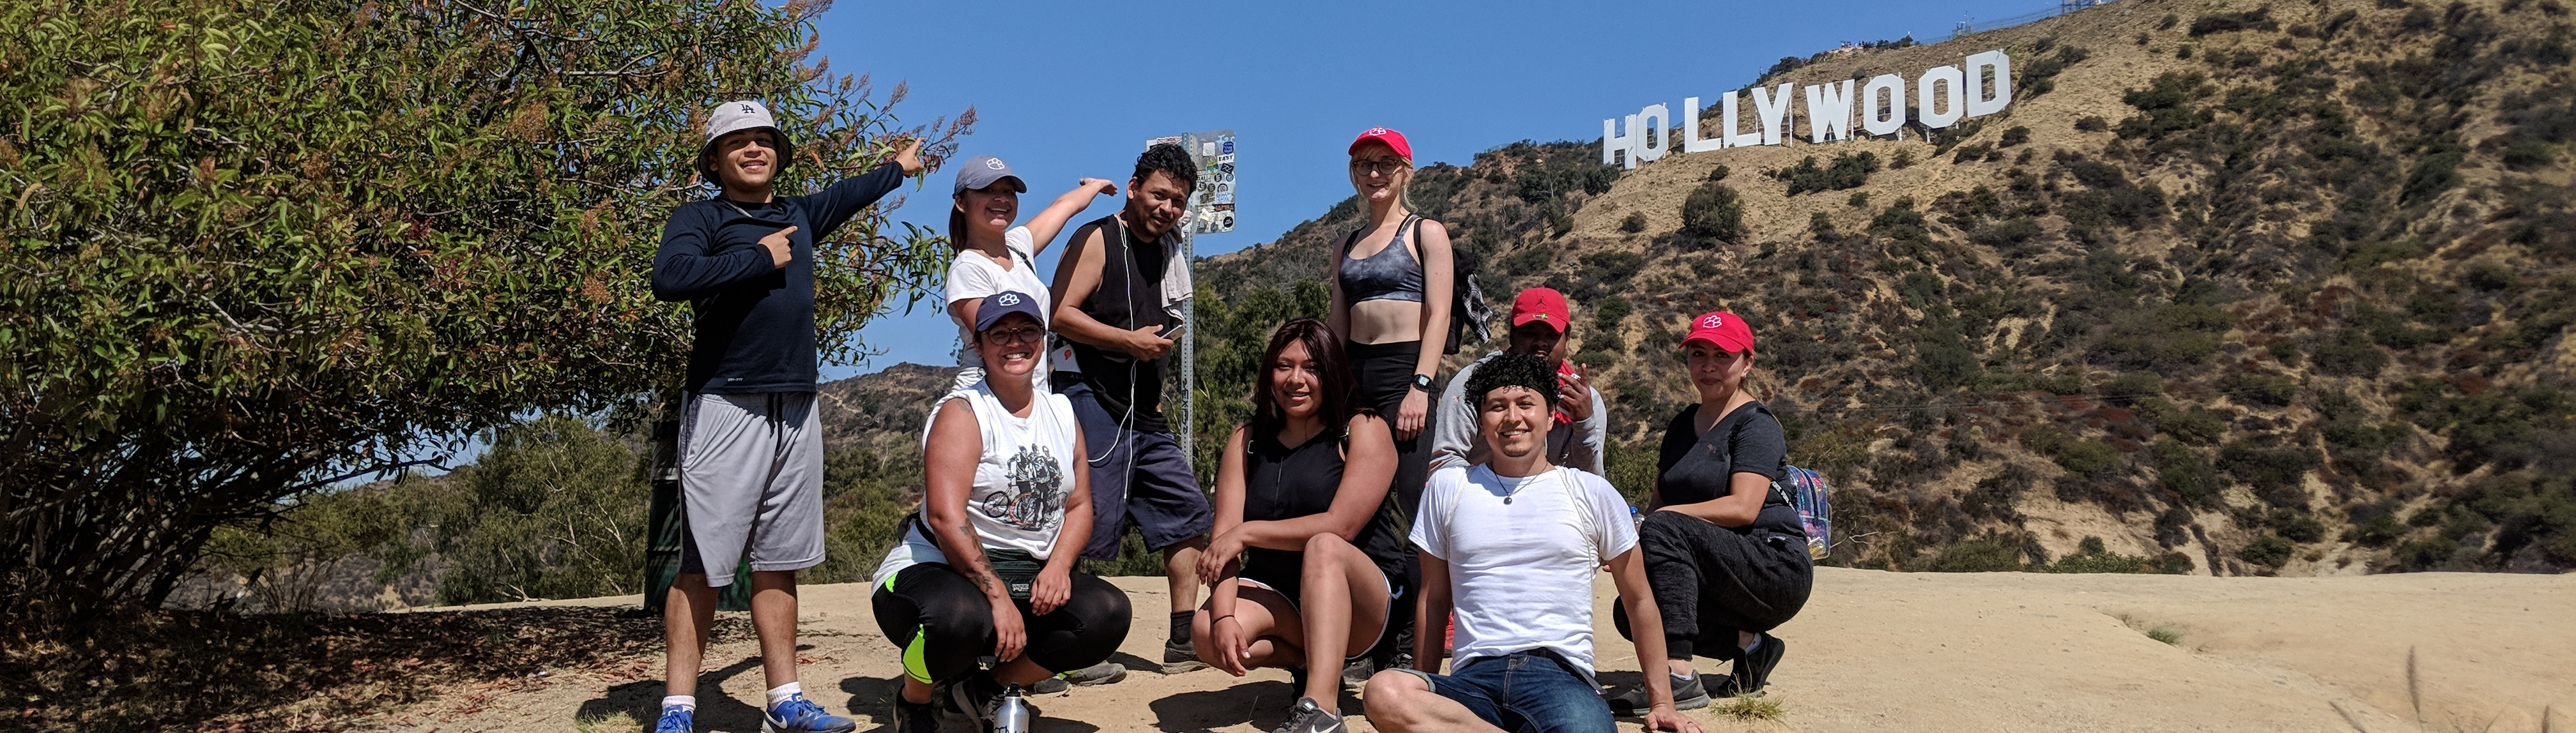 A group picture of staff and students at Hollywood Sign